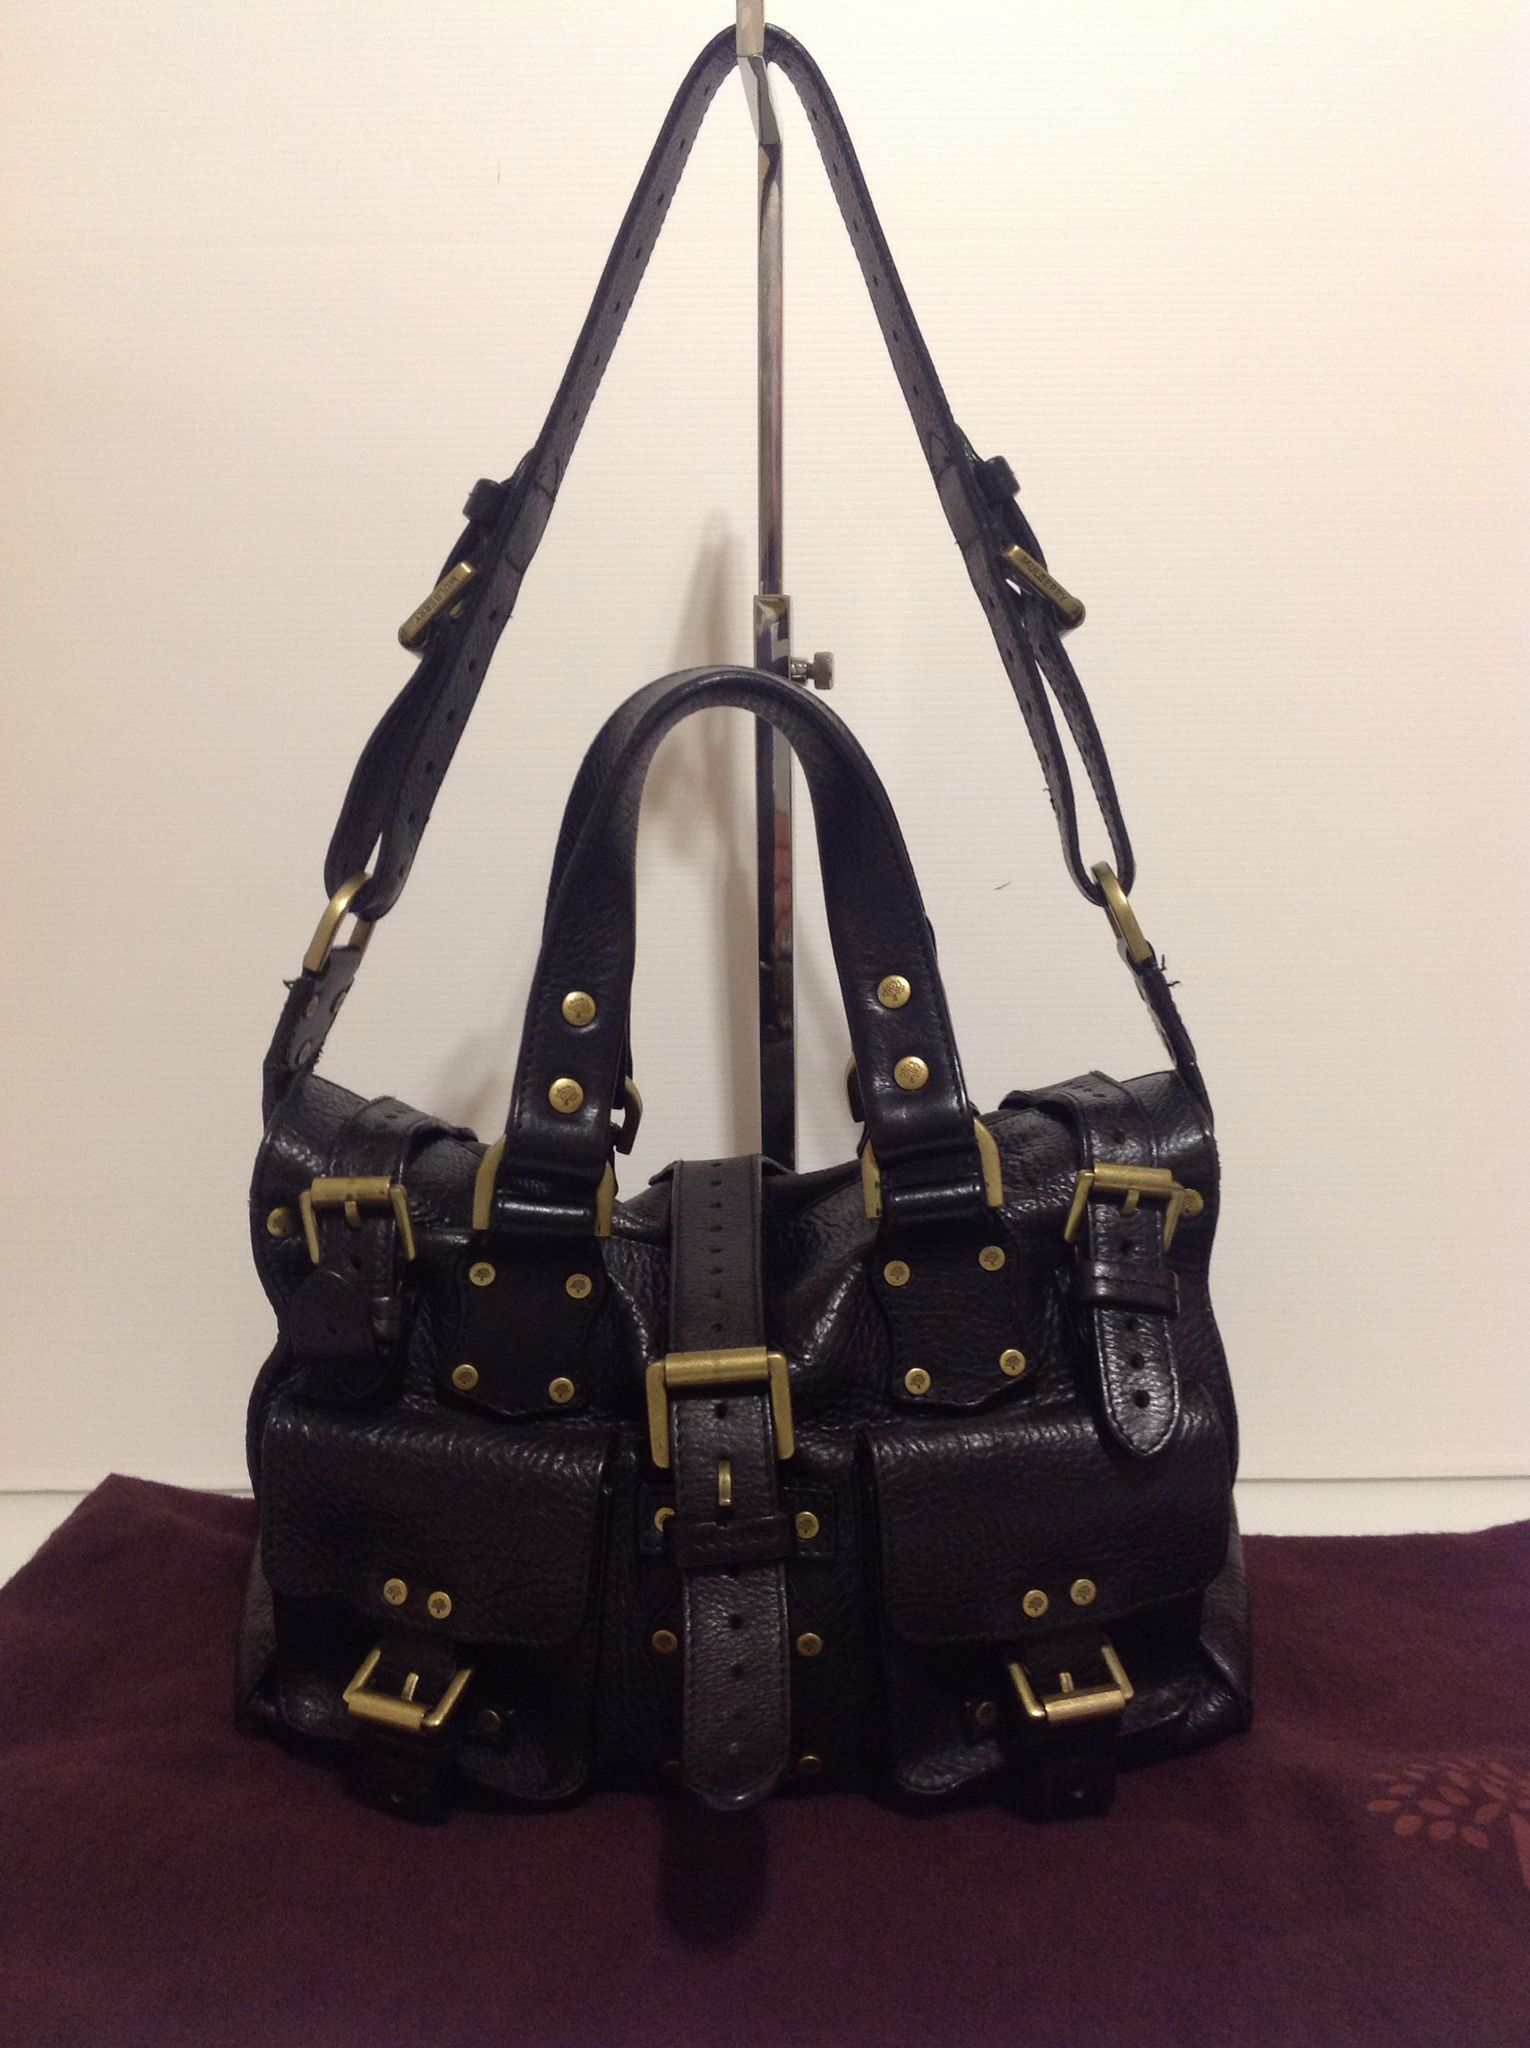 Authentic Mulberry Rosemary Shoulder Bag in Black Darwin